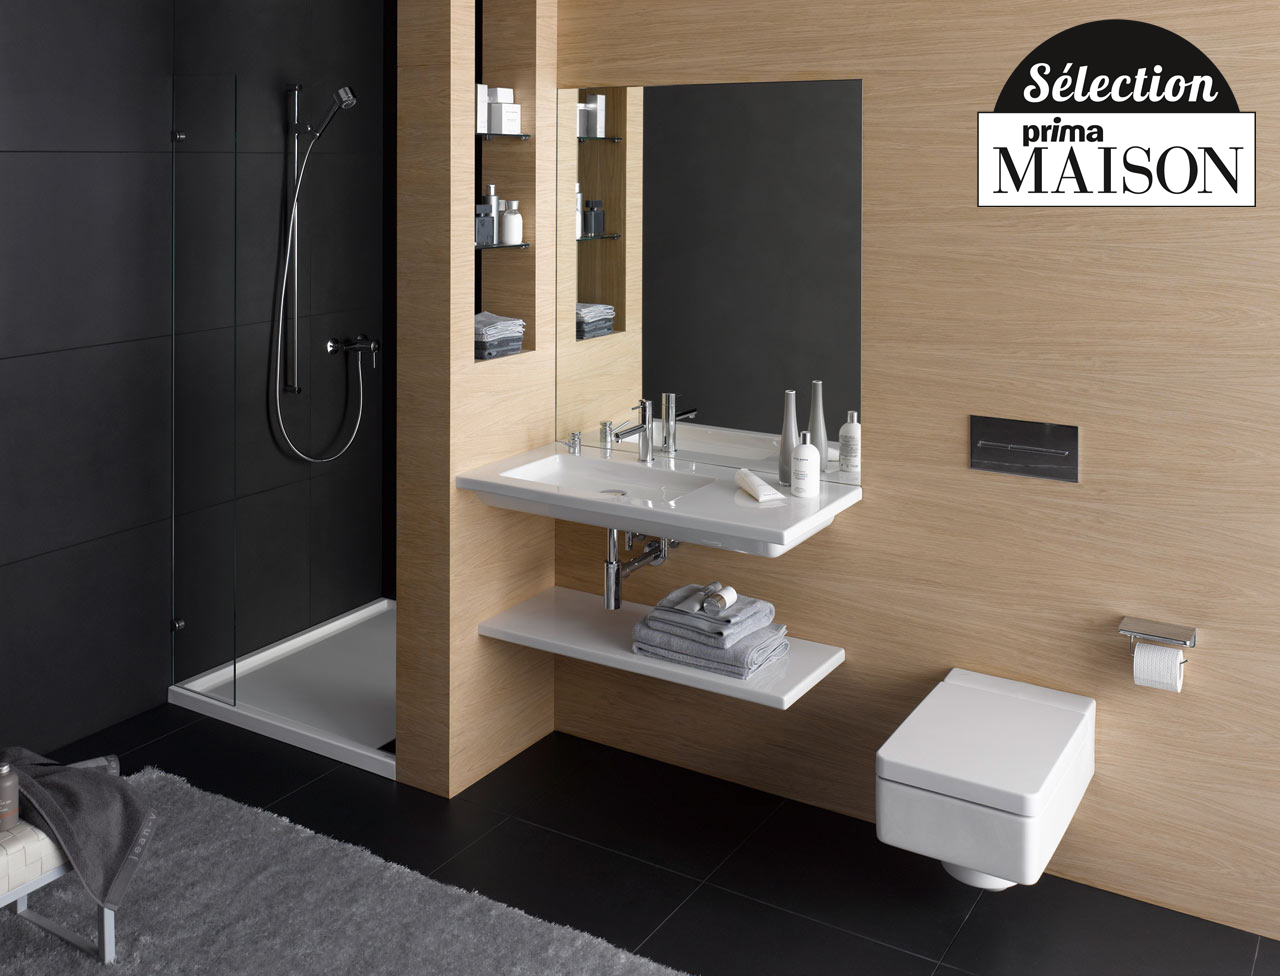 D coration salle de bain 2016 exemples d 39 am nagements for Exemple de deco de salle de bain